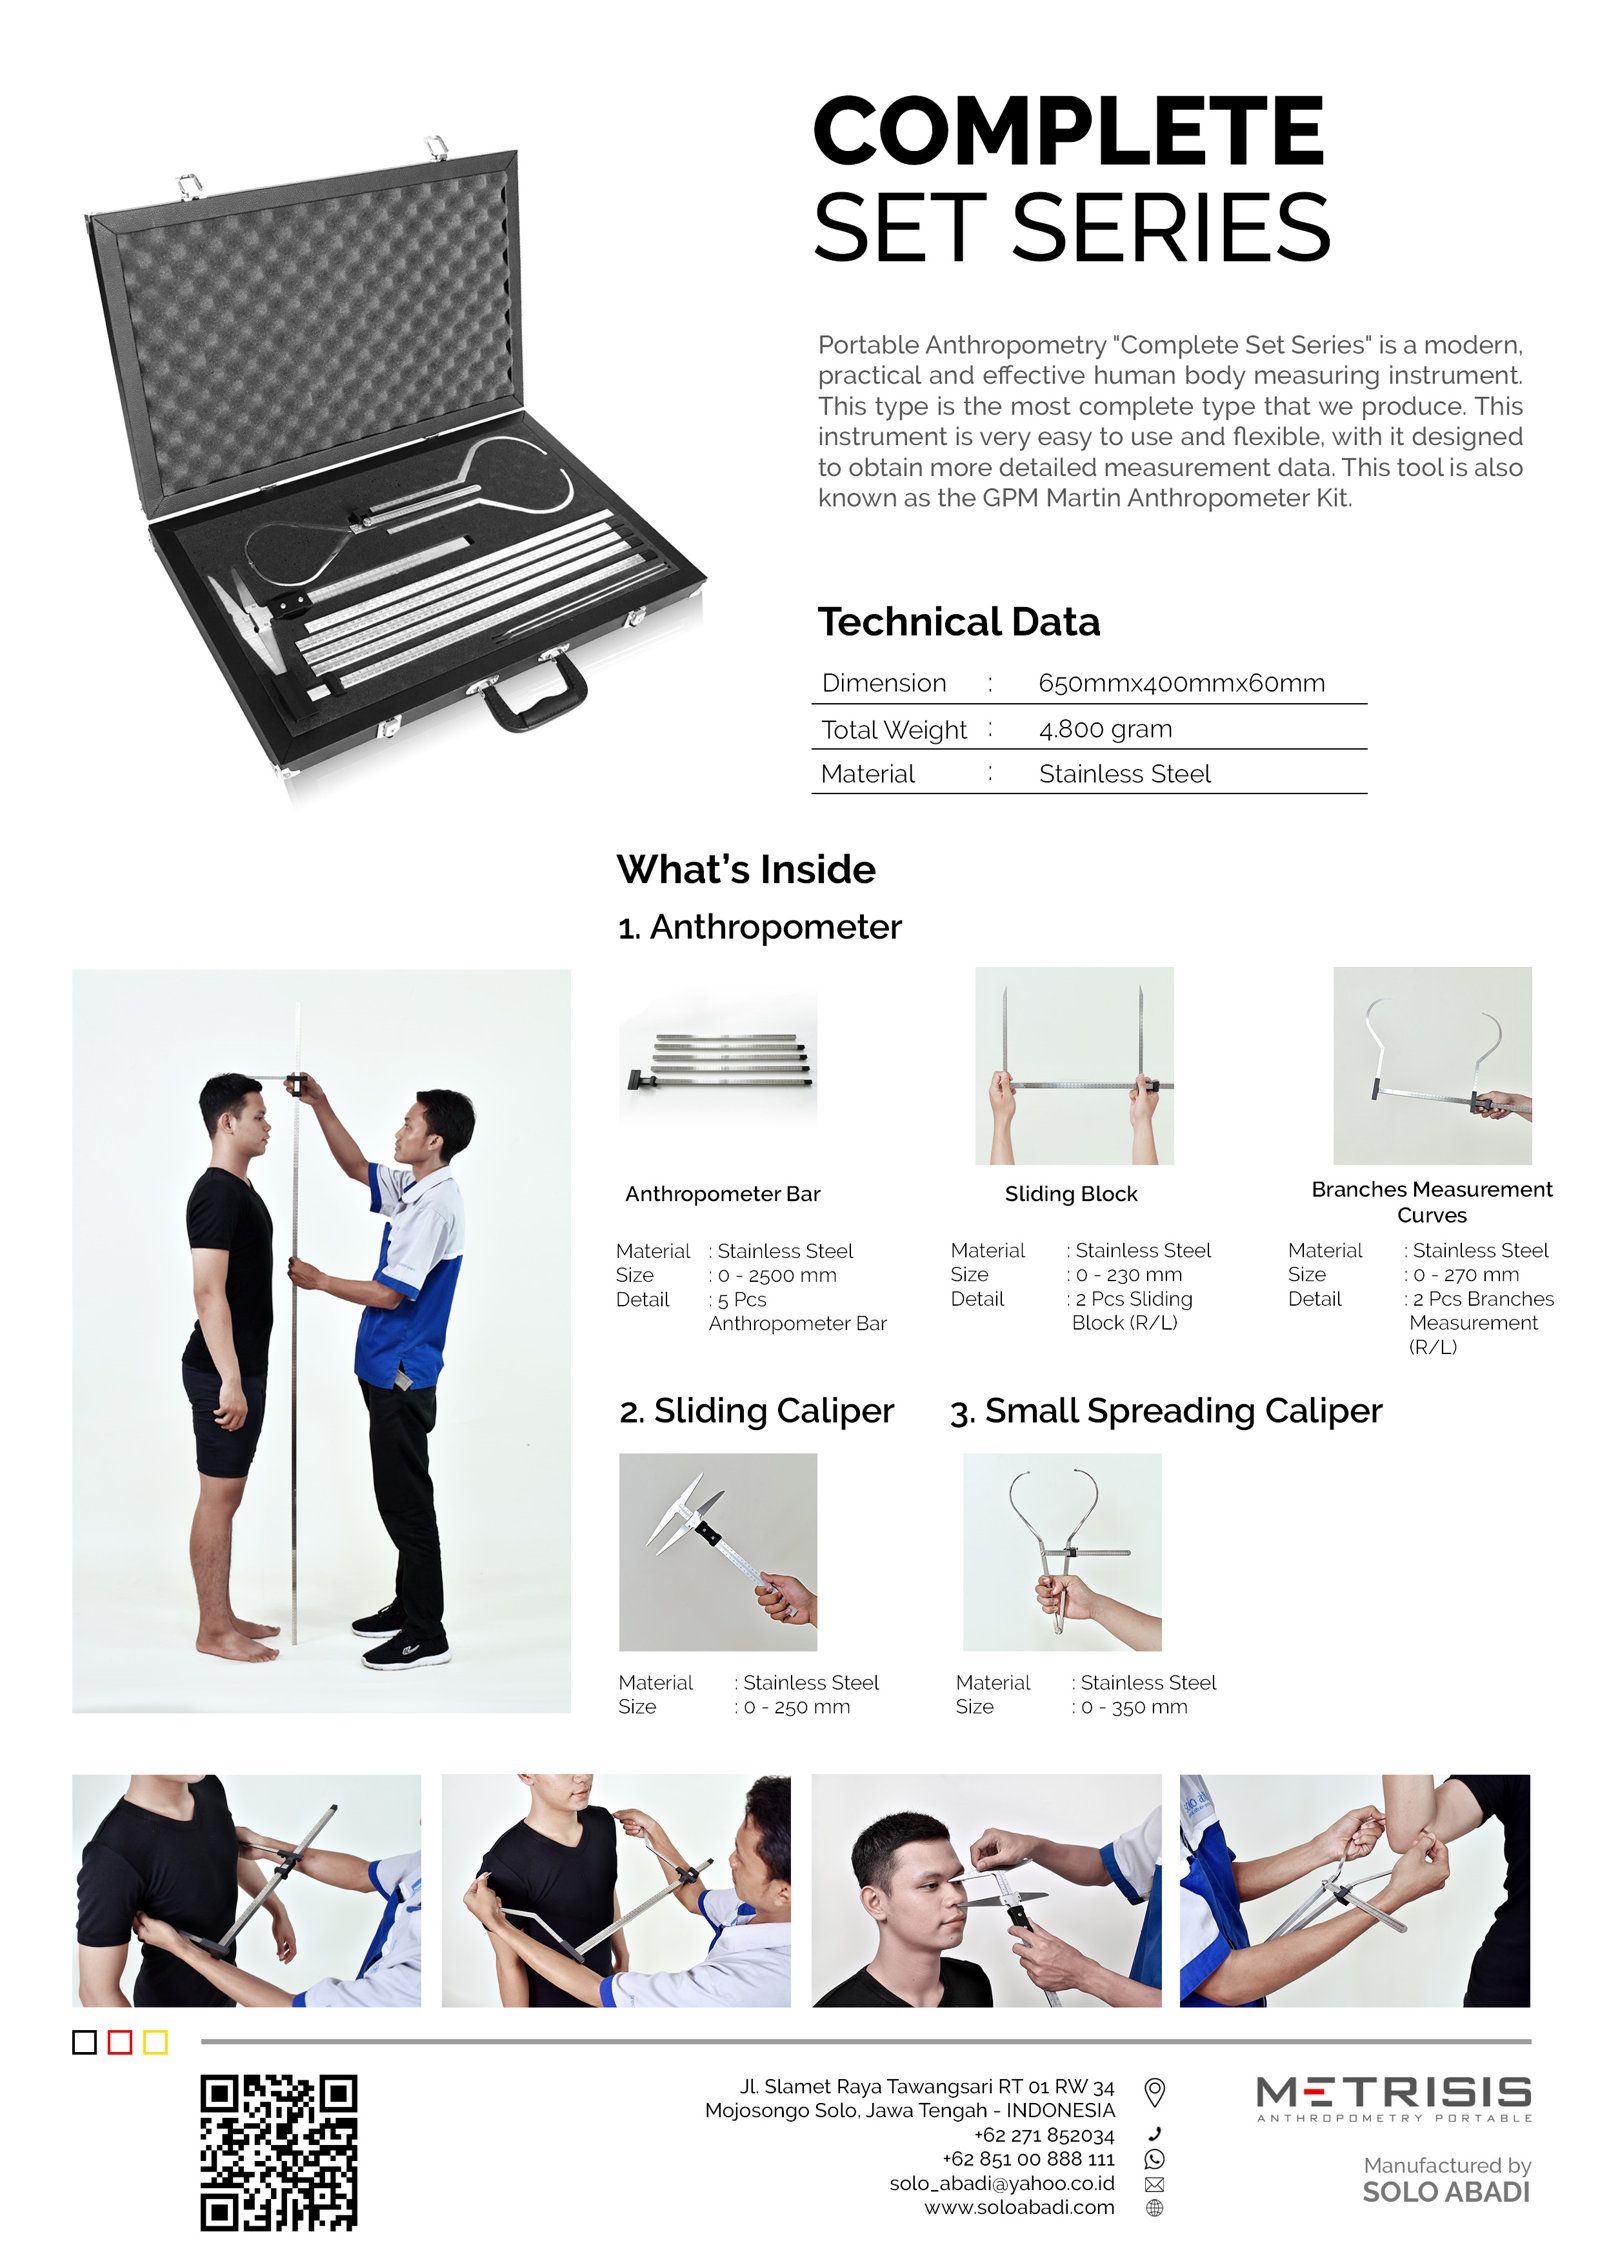 Brosure Portable Anthropometry Complete Set Series